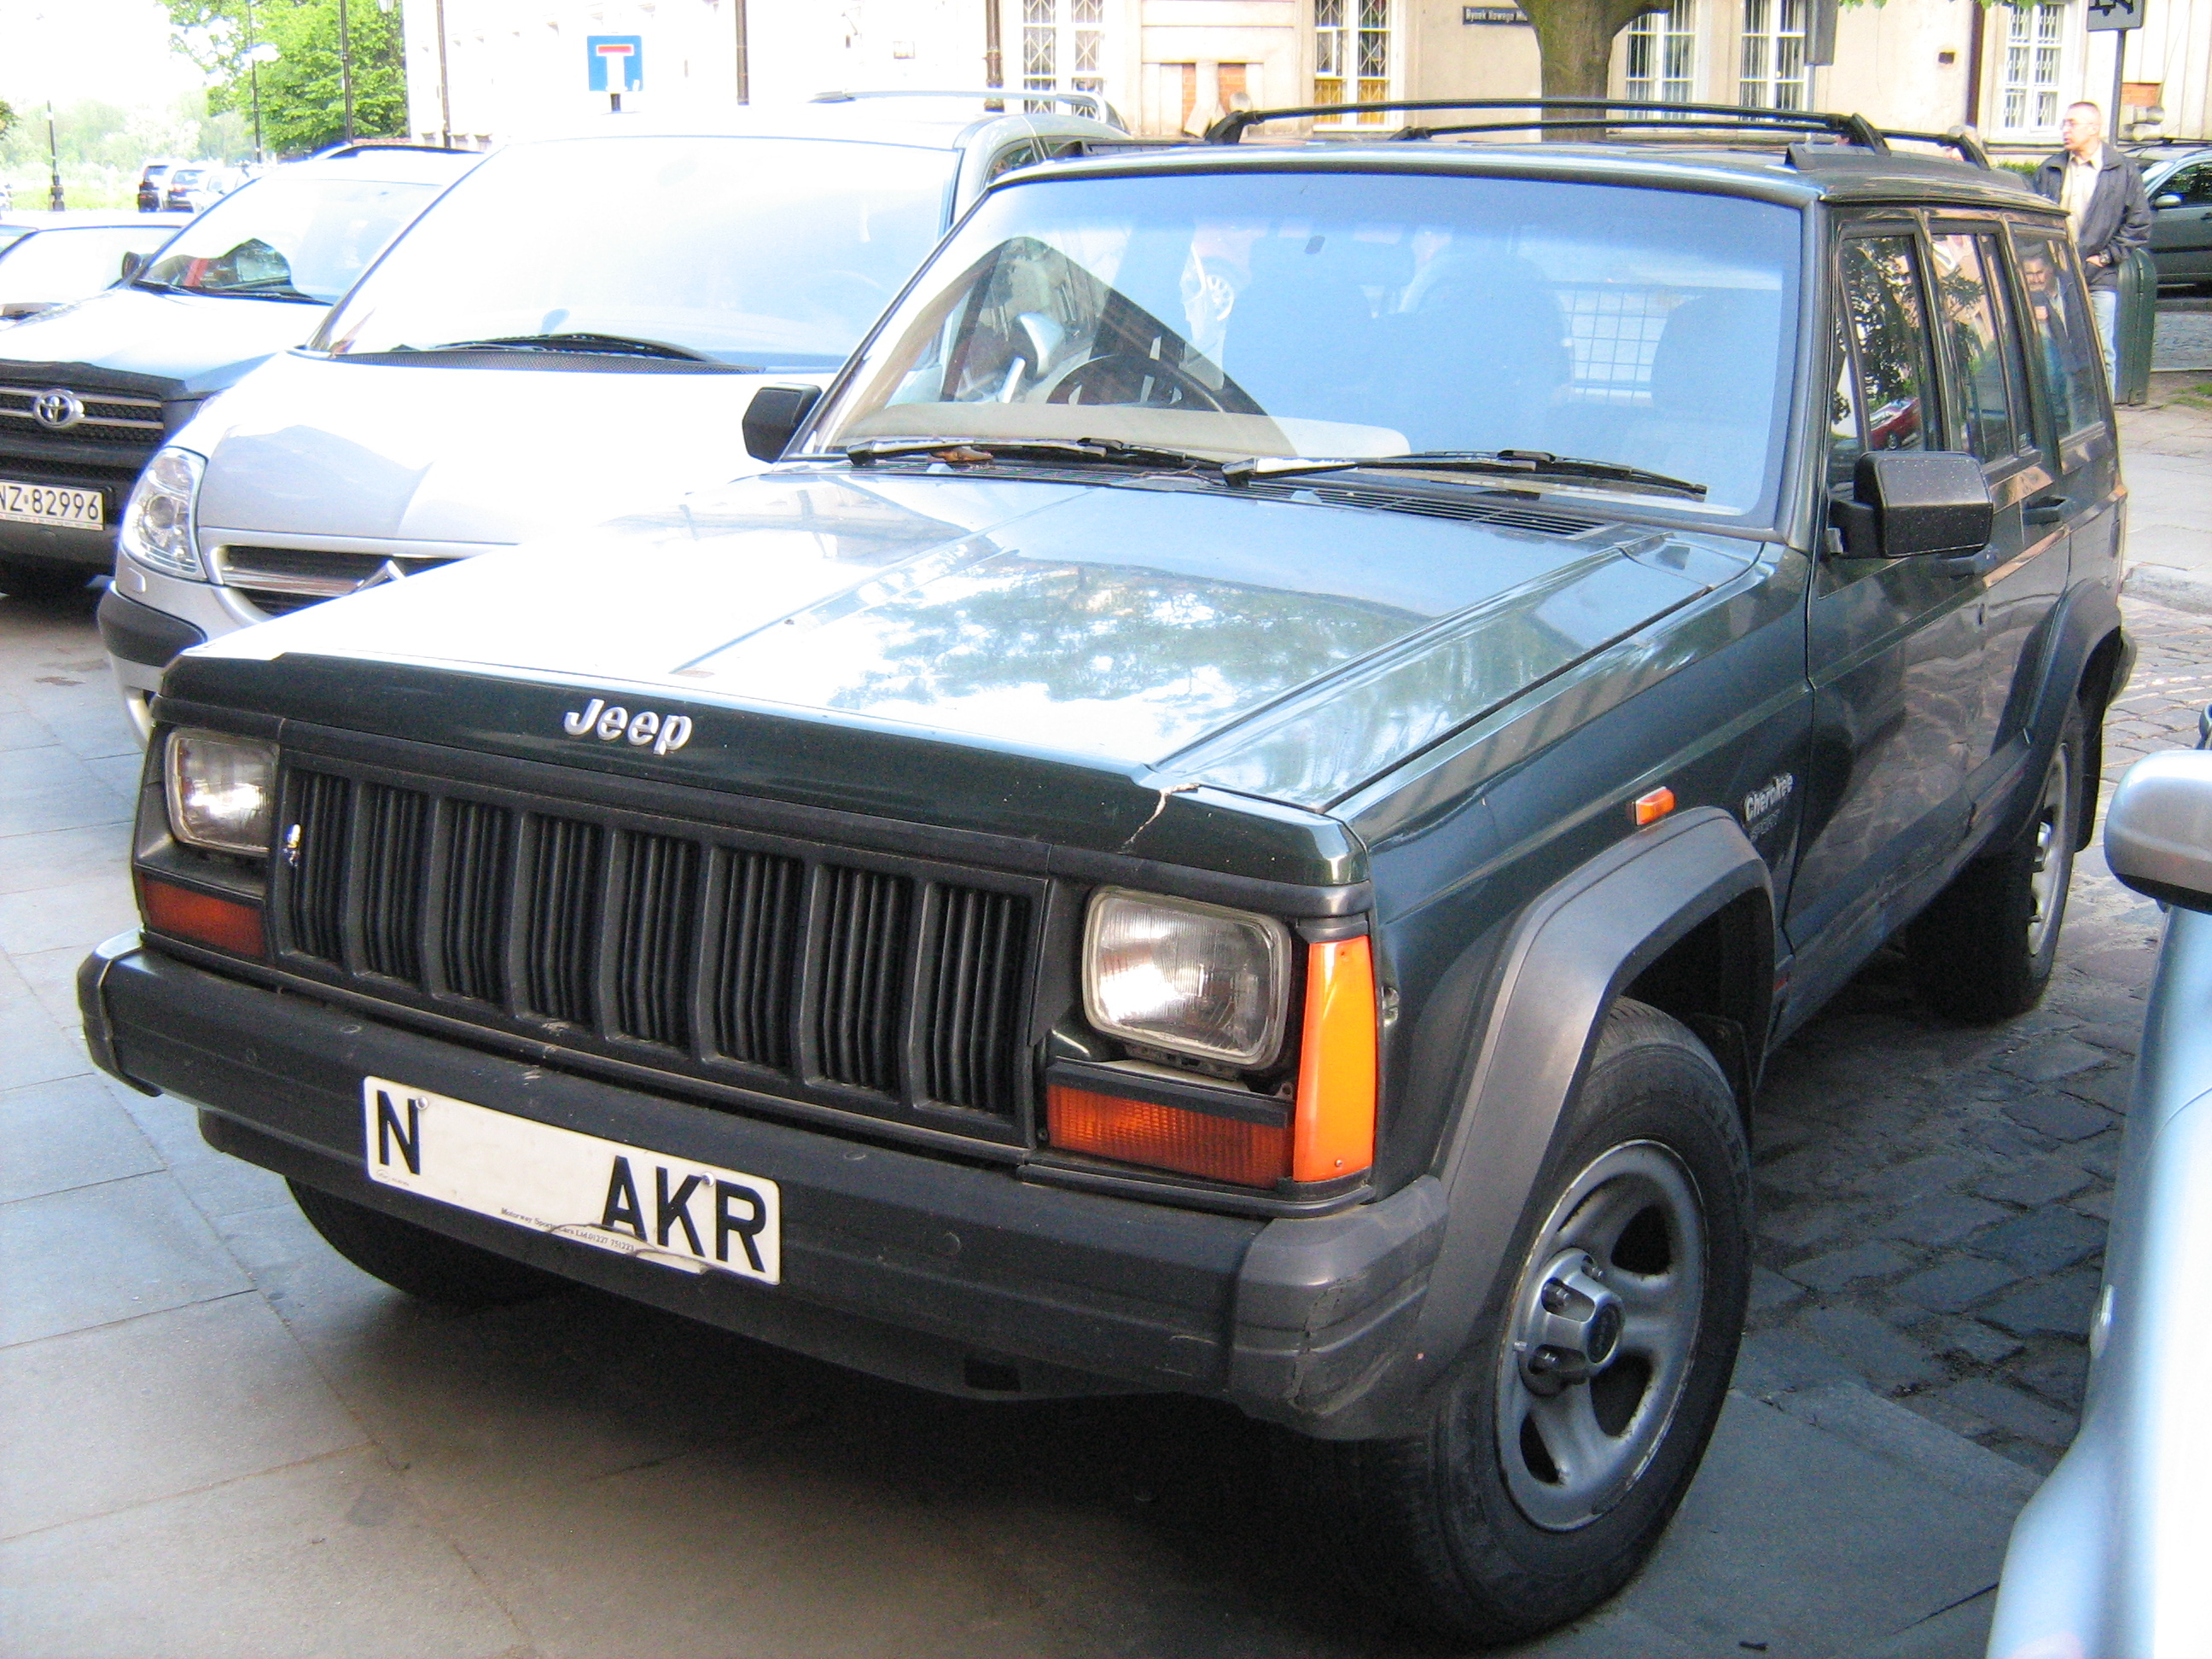 When was the last time you saw a factory diesel xj mj page 2 jeepforum com